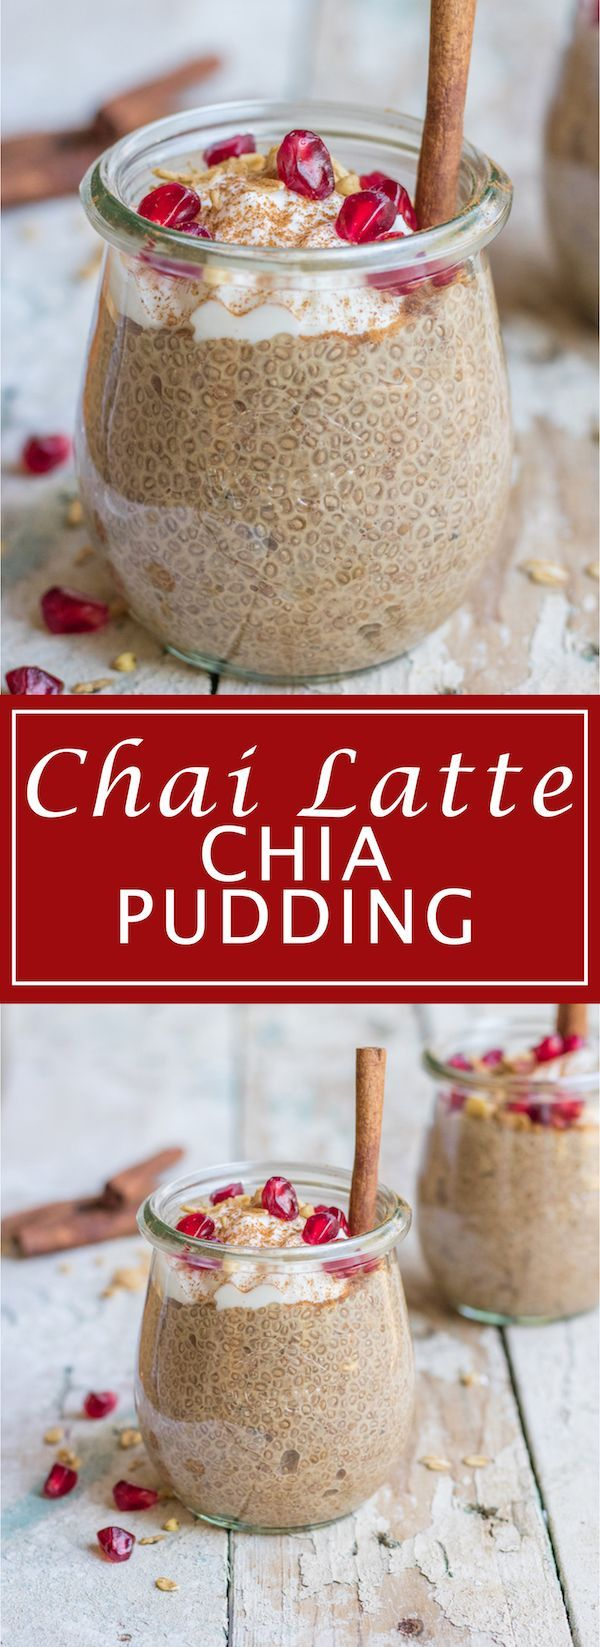 This chai latte chia pudding will be your new favourite chia treat this winter season! It's loaded with warming chai spices, healthy, and delicious!